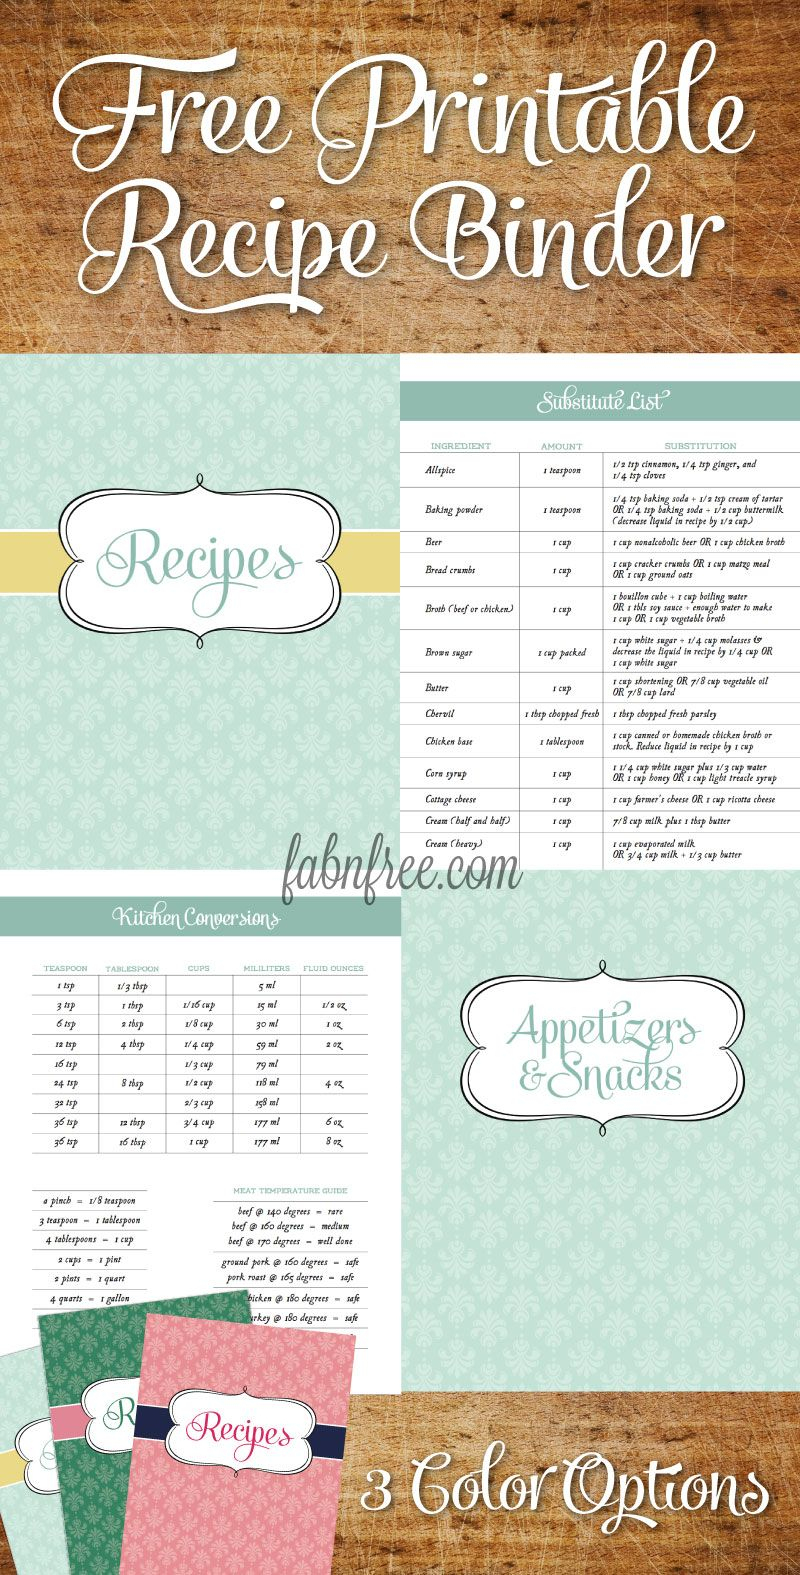 Free Recipe Binder In 3 Color Options | Fabnfree // Our Free Stuff - Free Printable Recipes